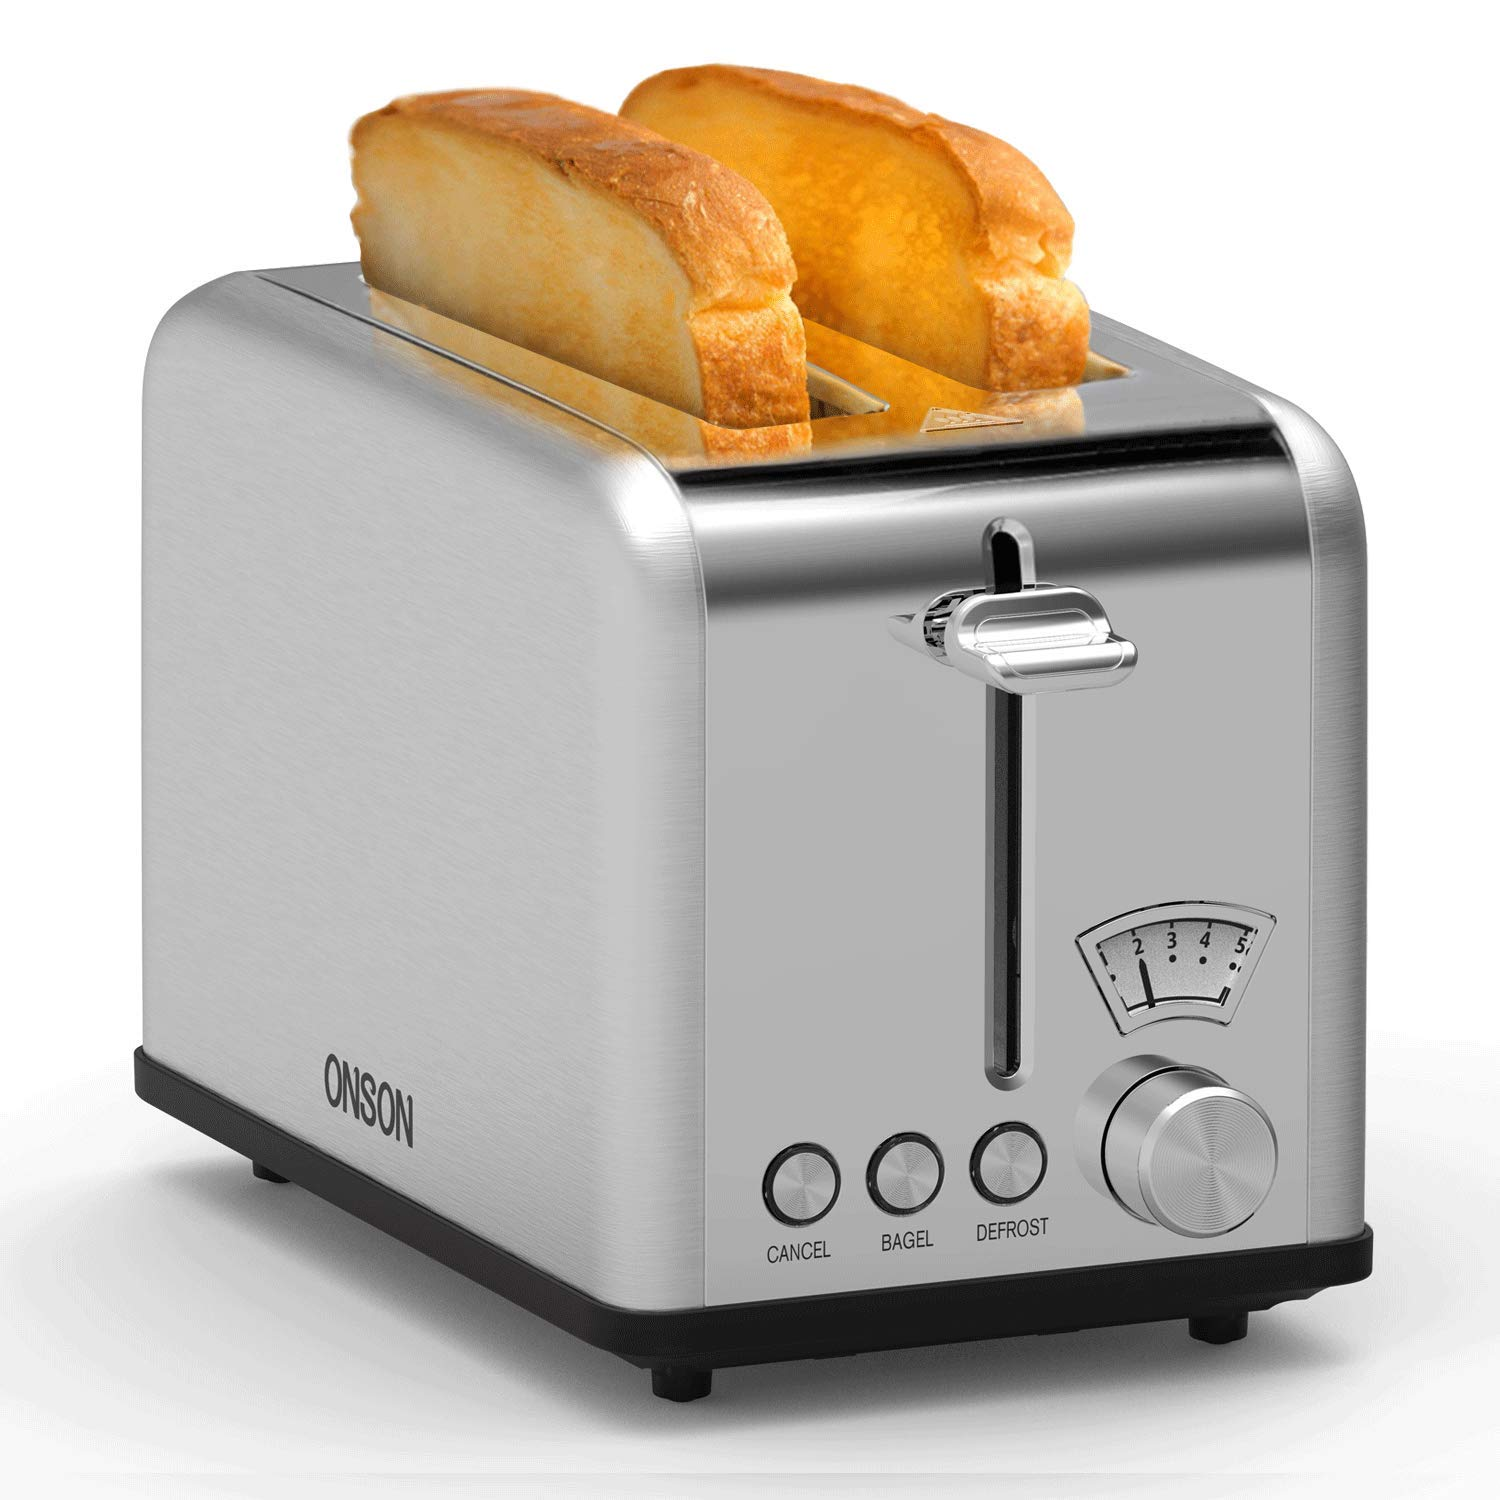 ONSON 2 Slice Toaster Stainless Steel,Bagel Toaster - 5 Bread Shade Settings,Bagel/Defrost/Cancel Function,Extra Wide Slots, Removable Crumb Tray, Stainless Steel Grill, Suitable for Croissants,and Various Bread Types (825W, Silver) by ONSON